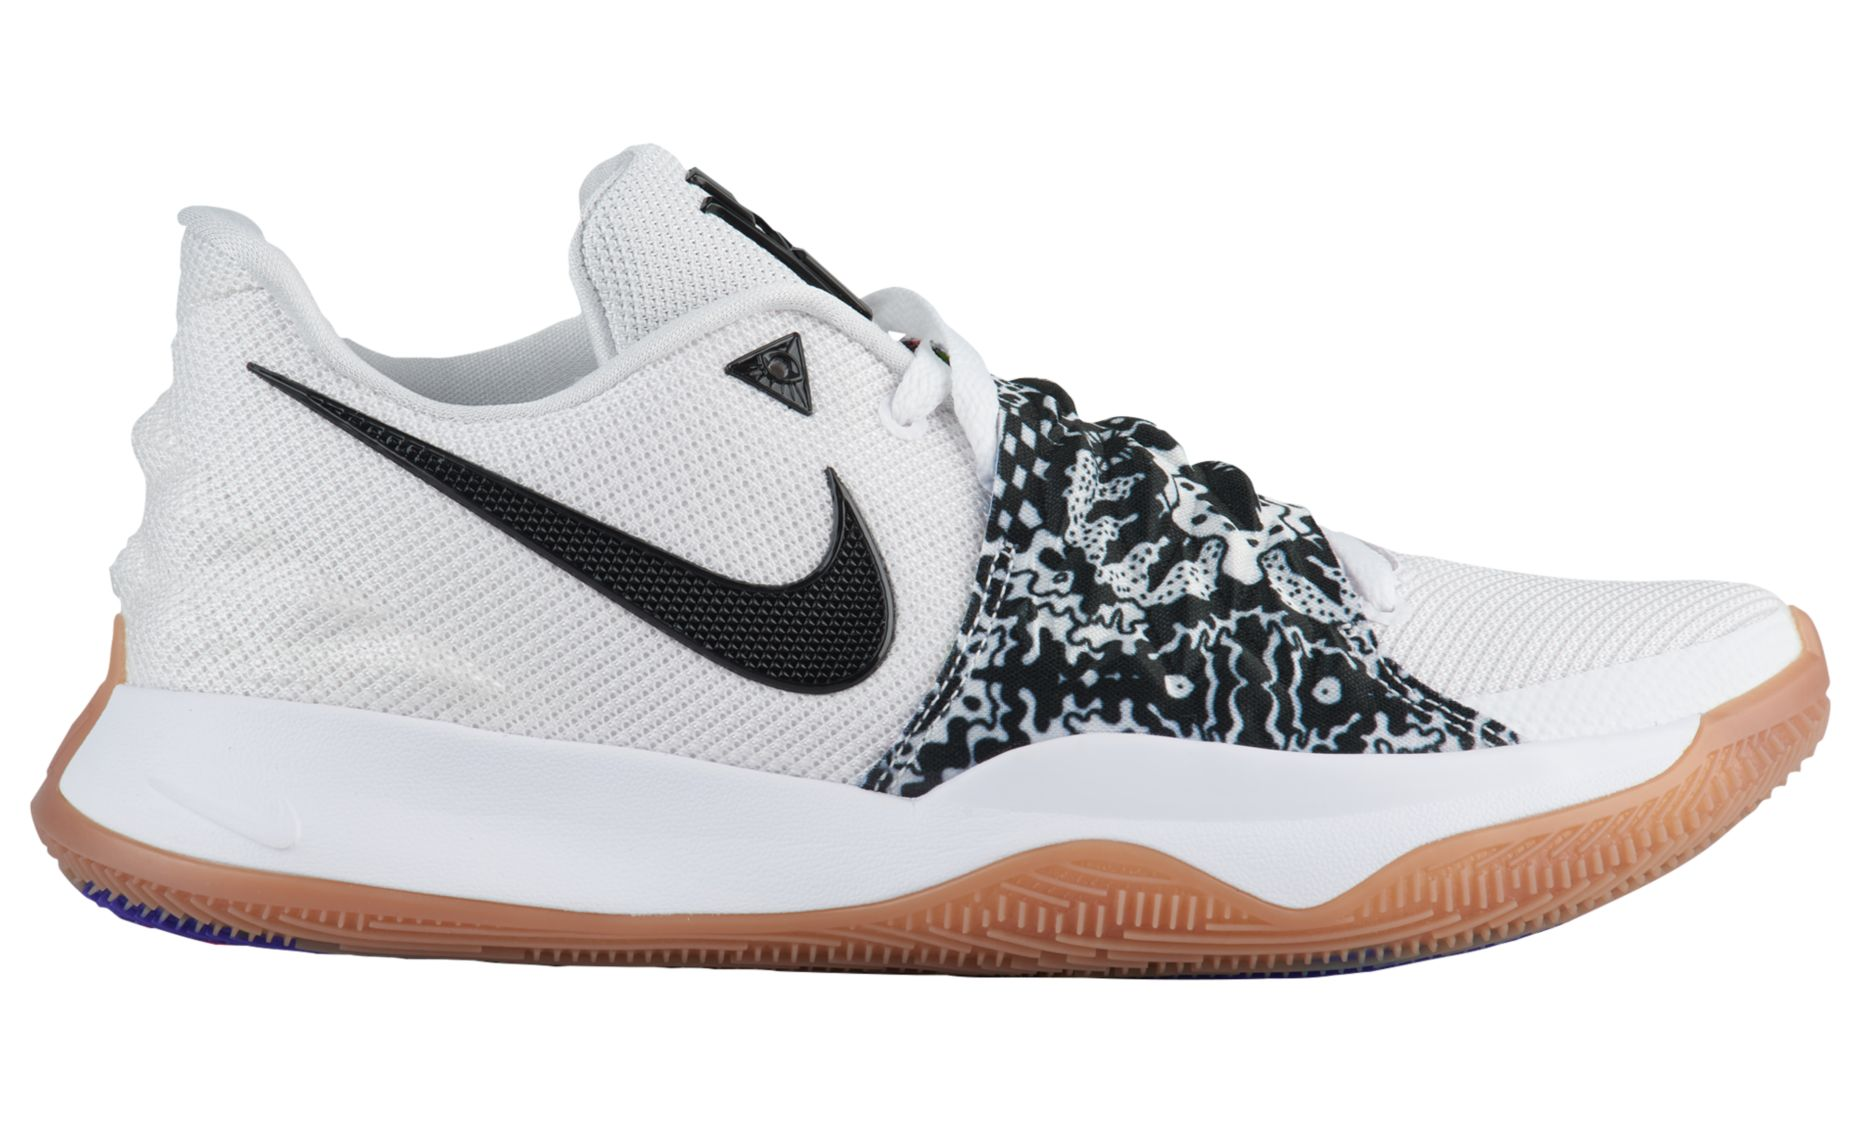 35a2fb97b8bf5 This May Be the Nike Kyrie 4 Low